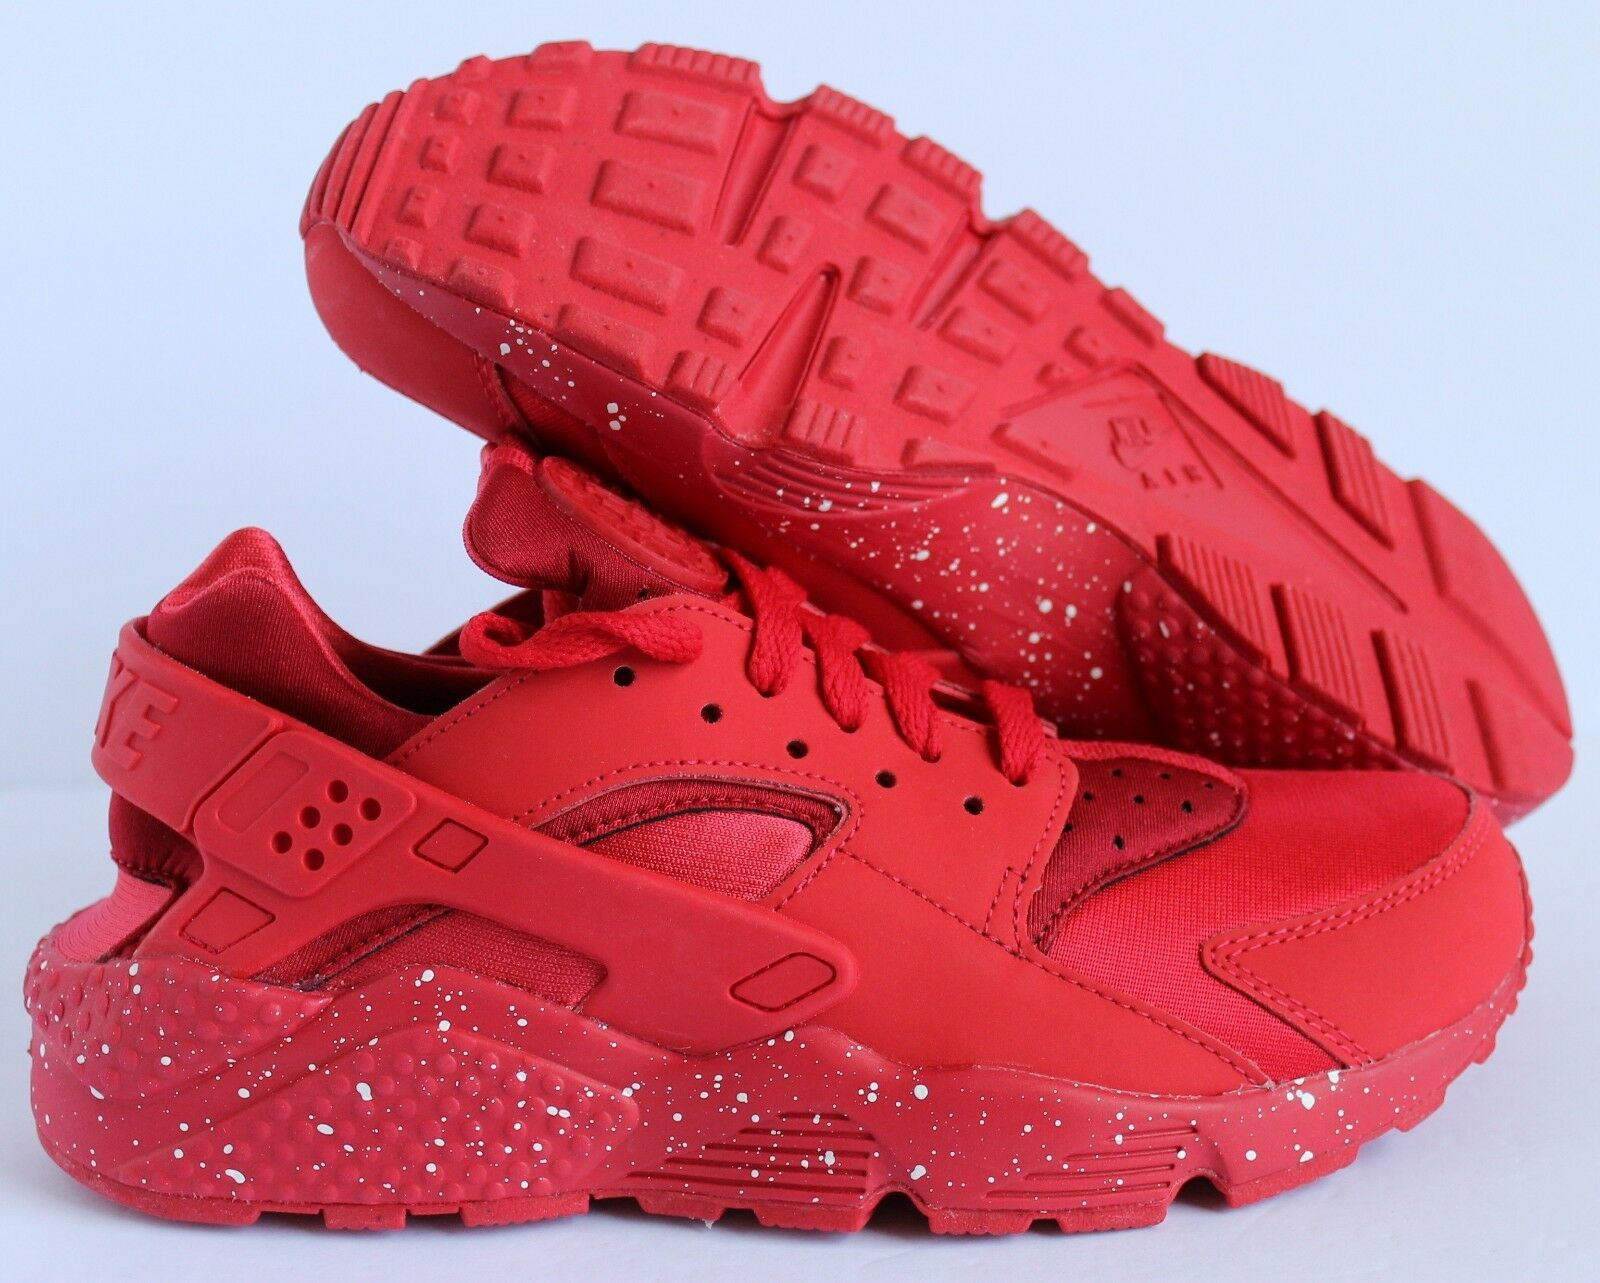 Nike Men's Air Huarache Premium ID Red SZ 6.5  [777330-972]